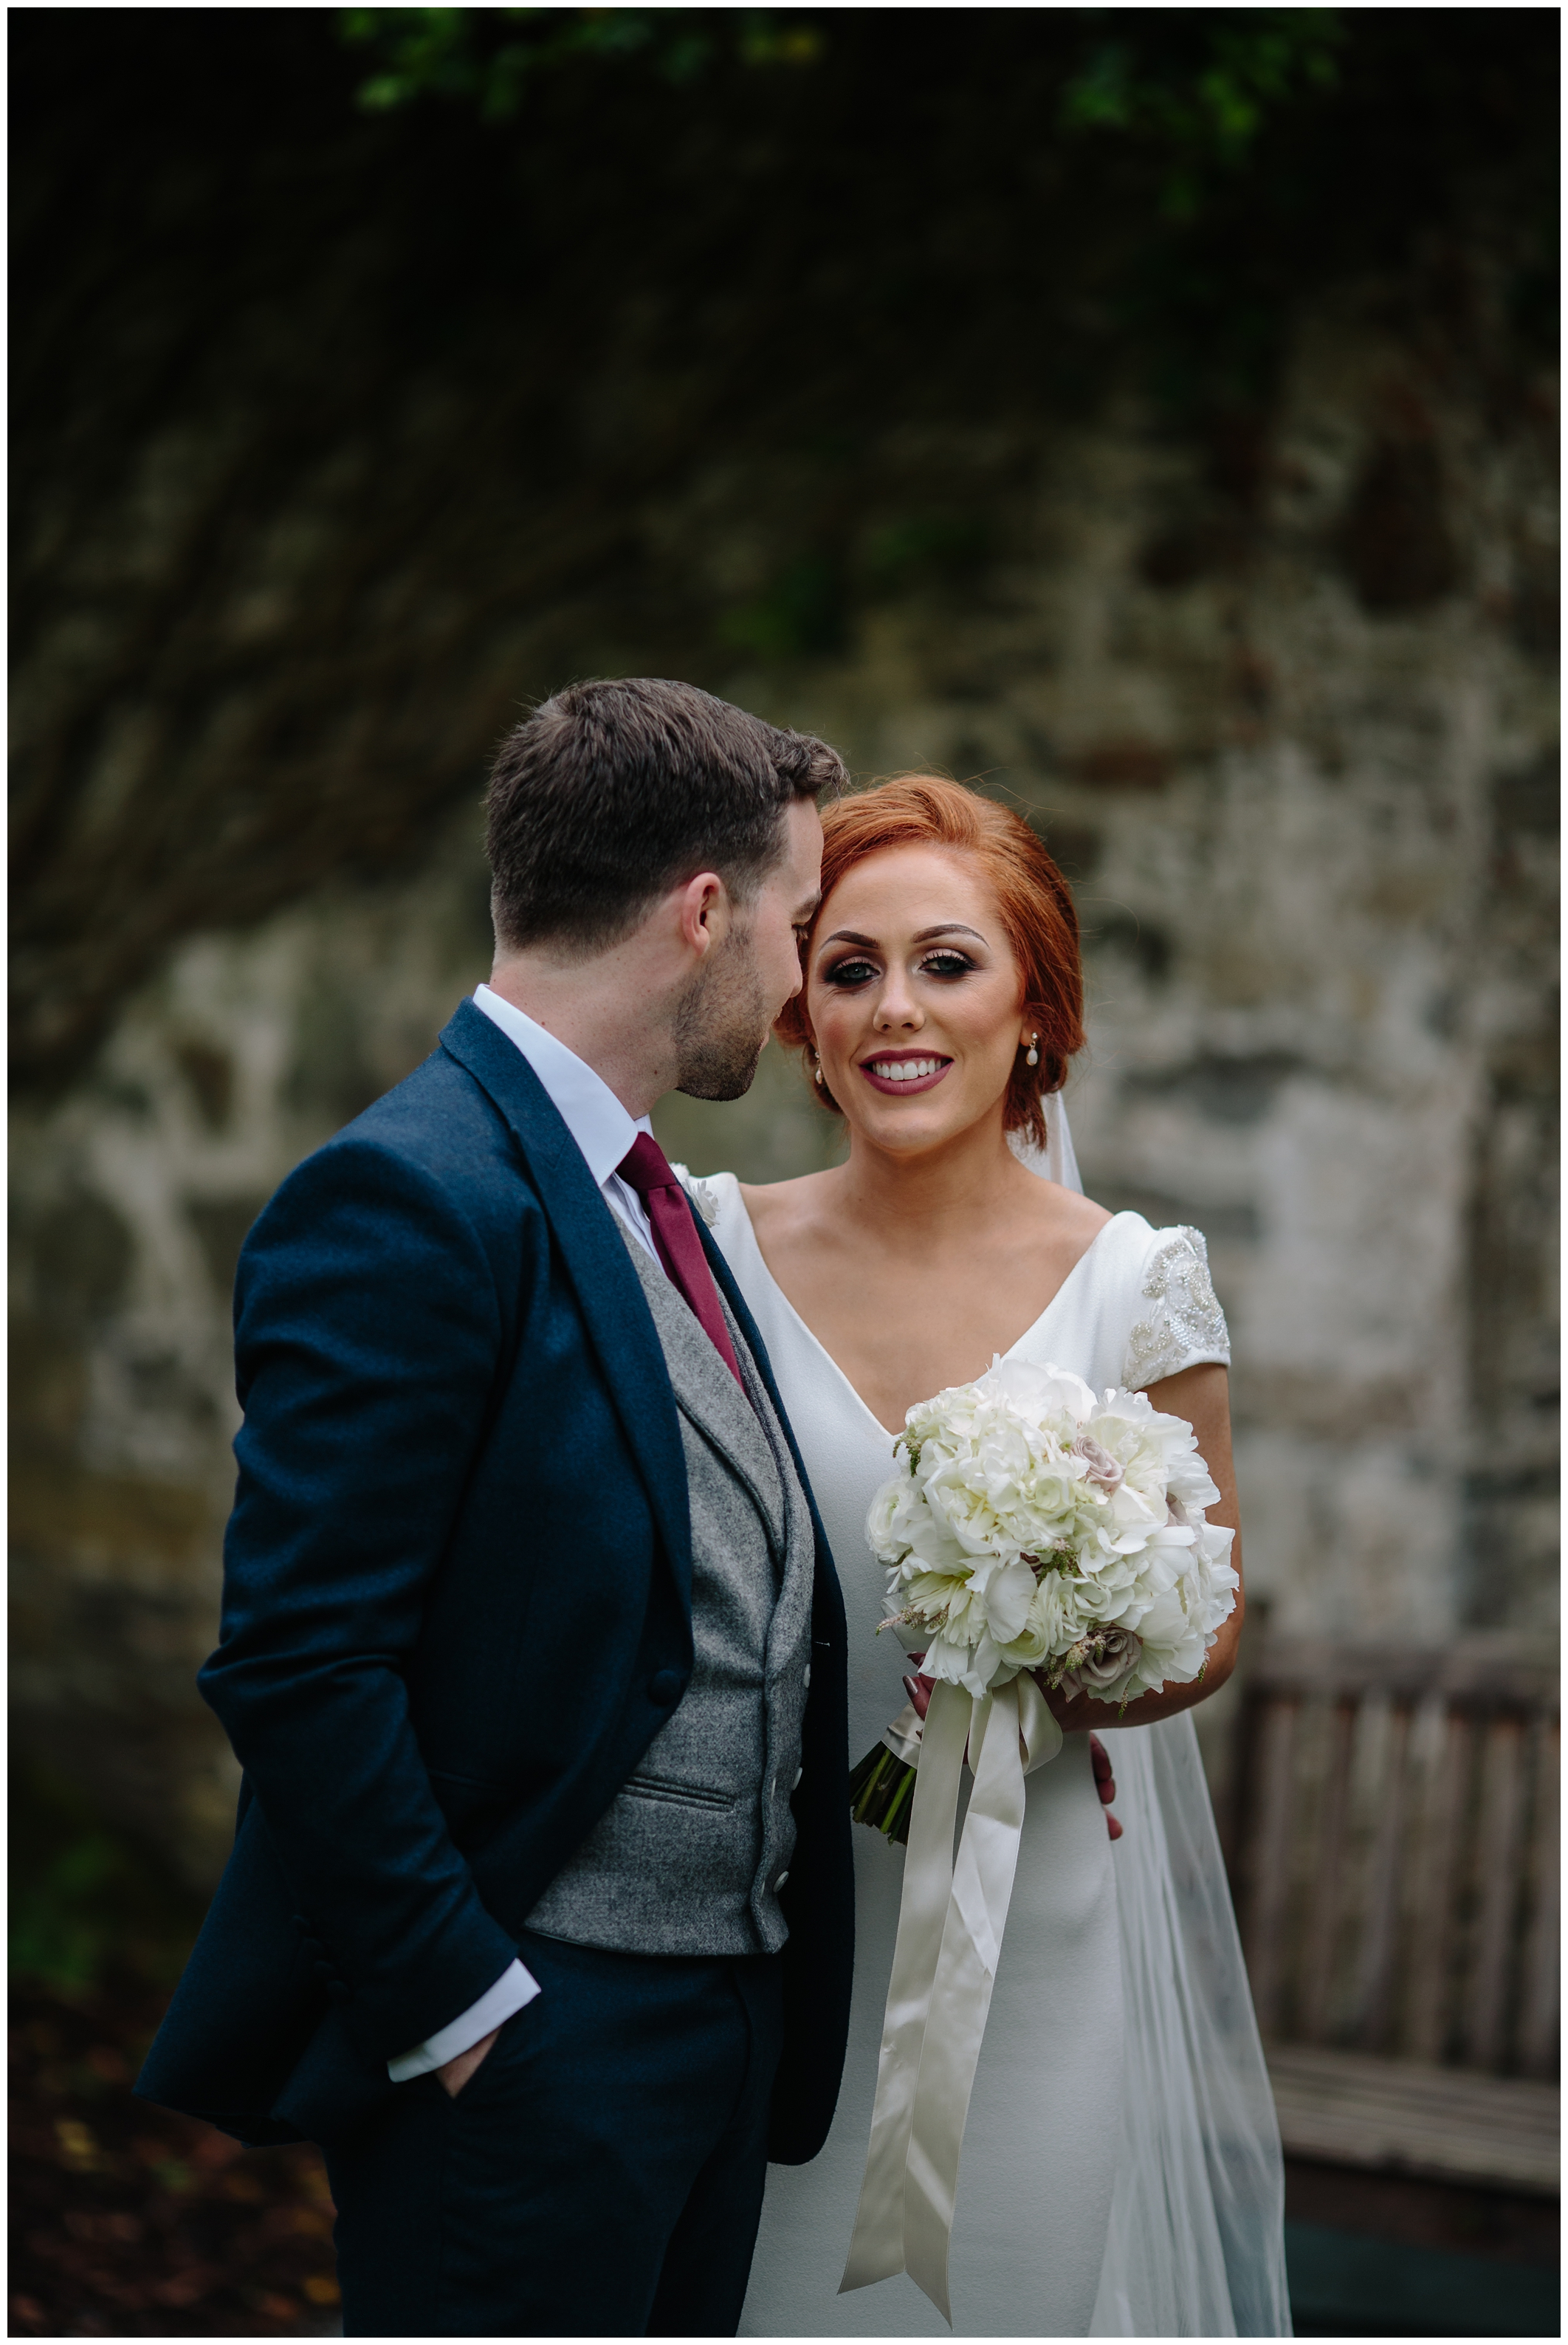 sinead_emmet_farnham_estate_wedding_jude_browne_photography_0114.jpg